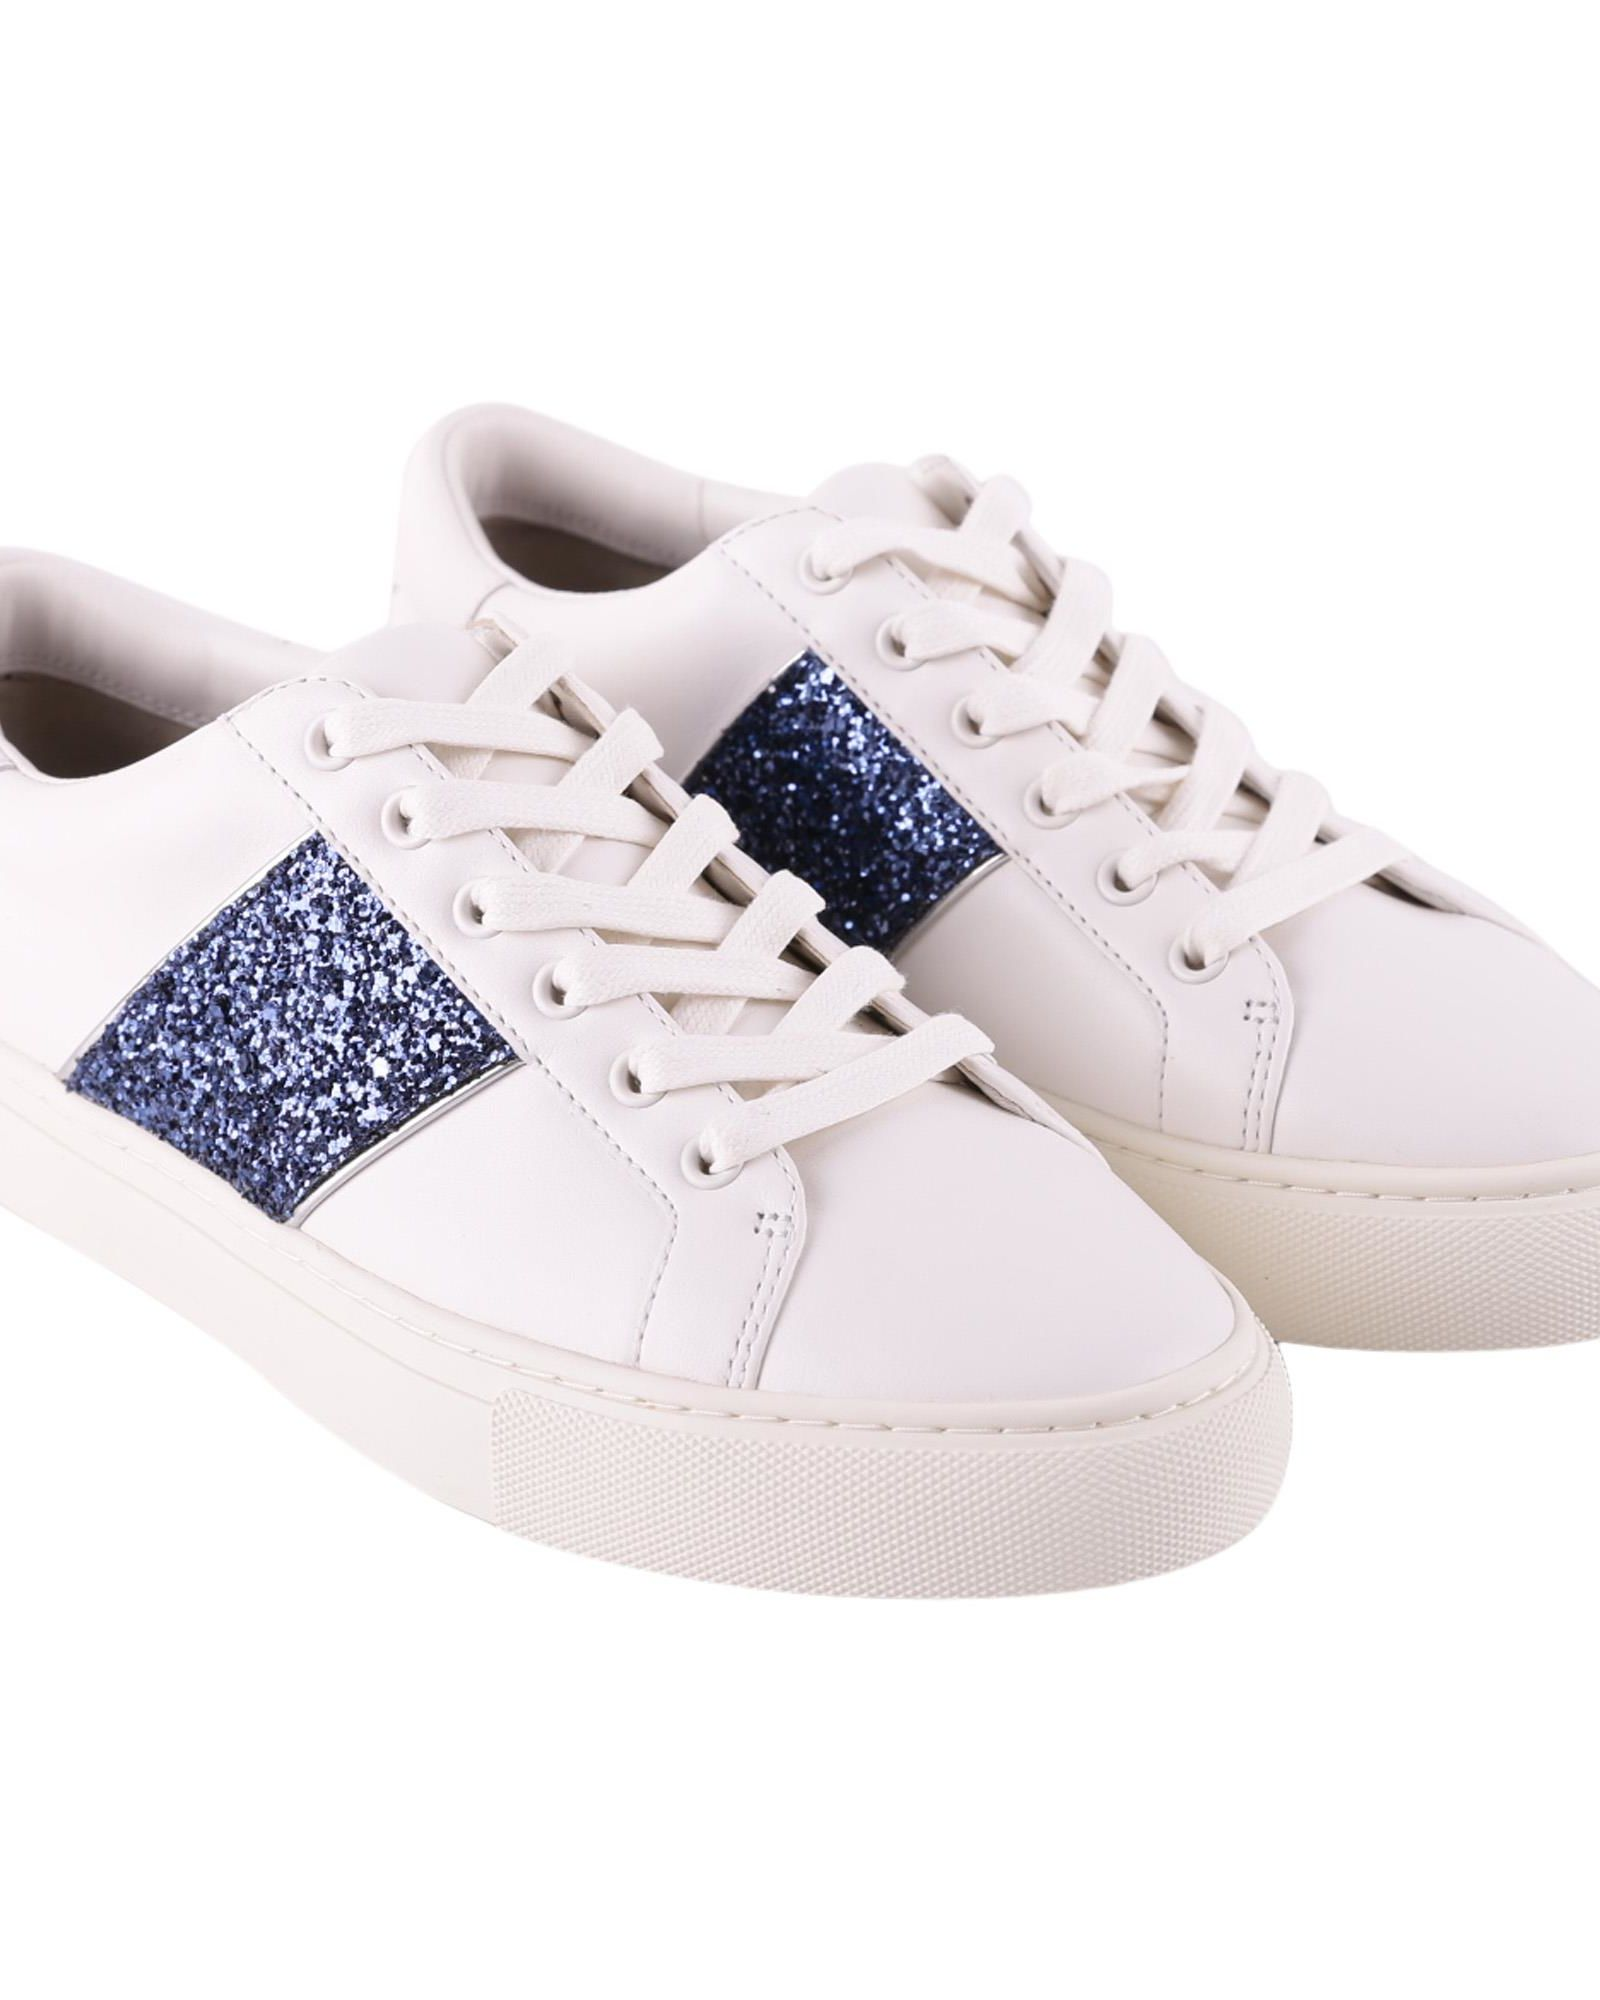 58e375637d9 Tory Burch Carter Glitter Lace-Up Leather Sneakers In Snow White ...